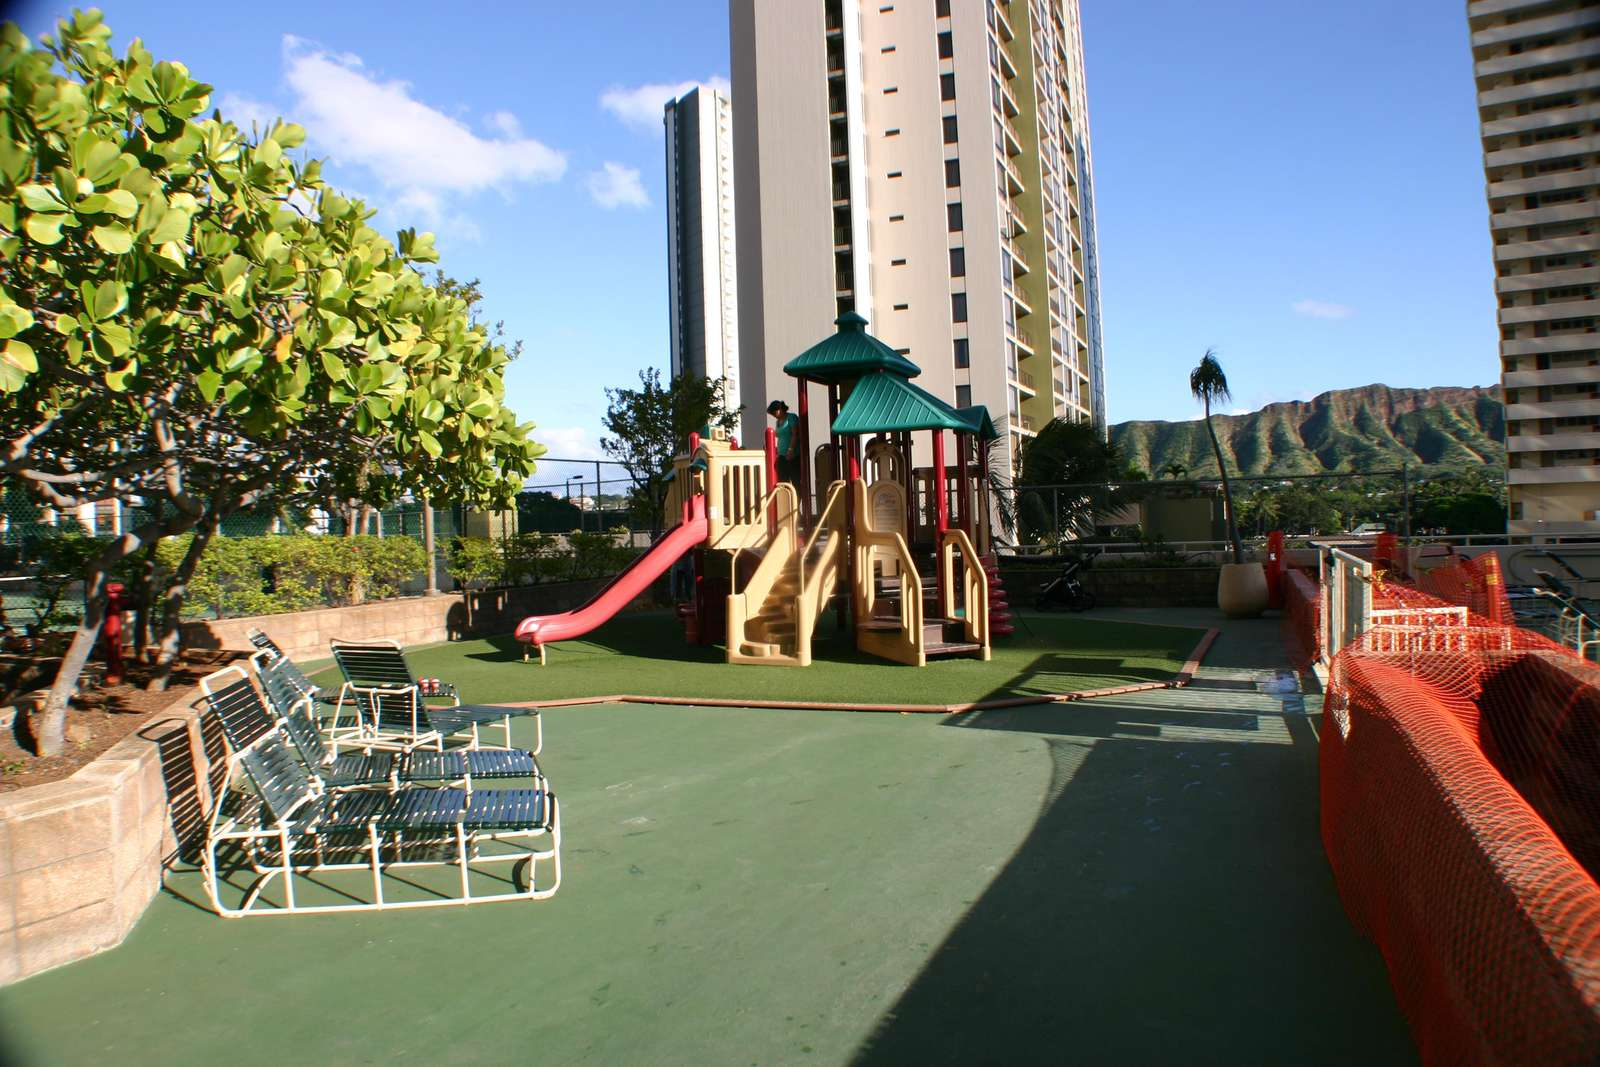 kids area on the recreation deck